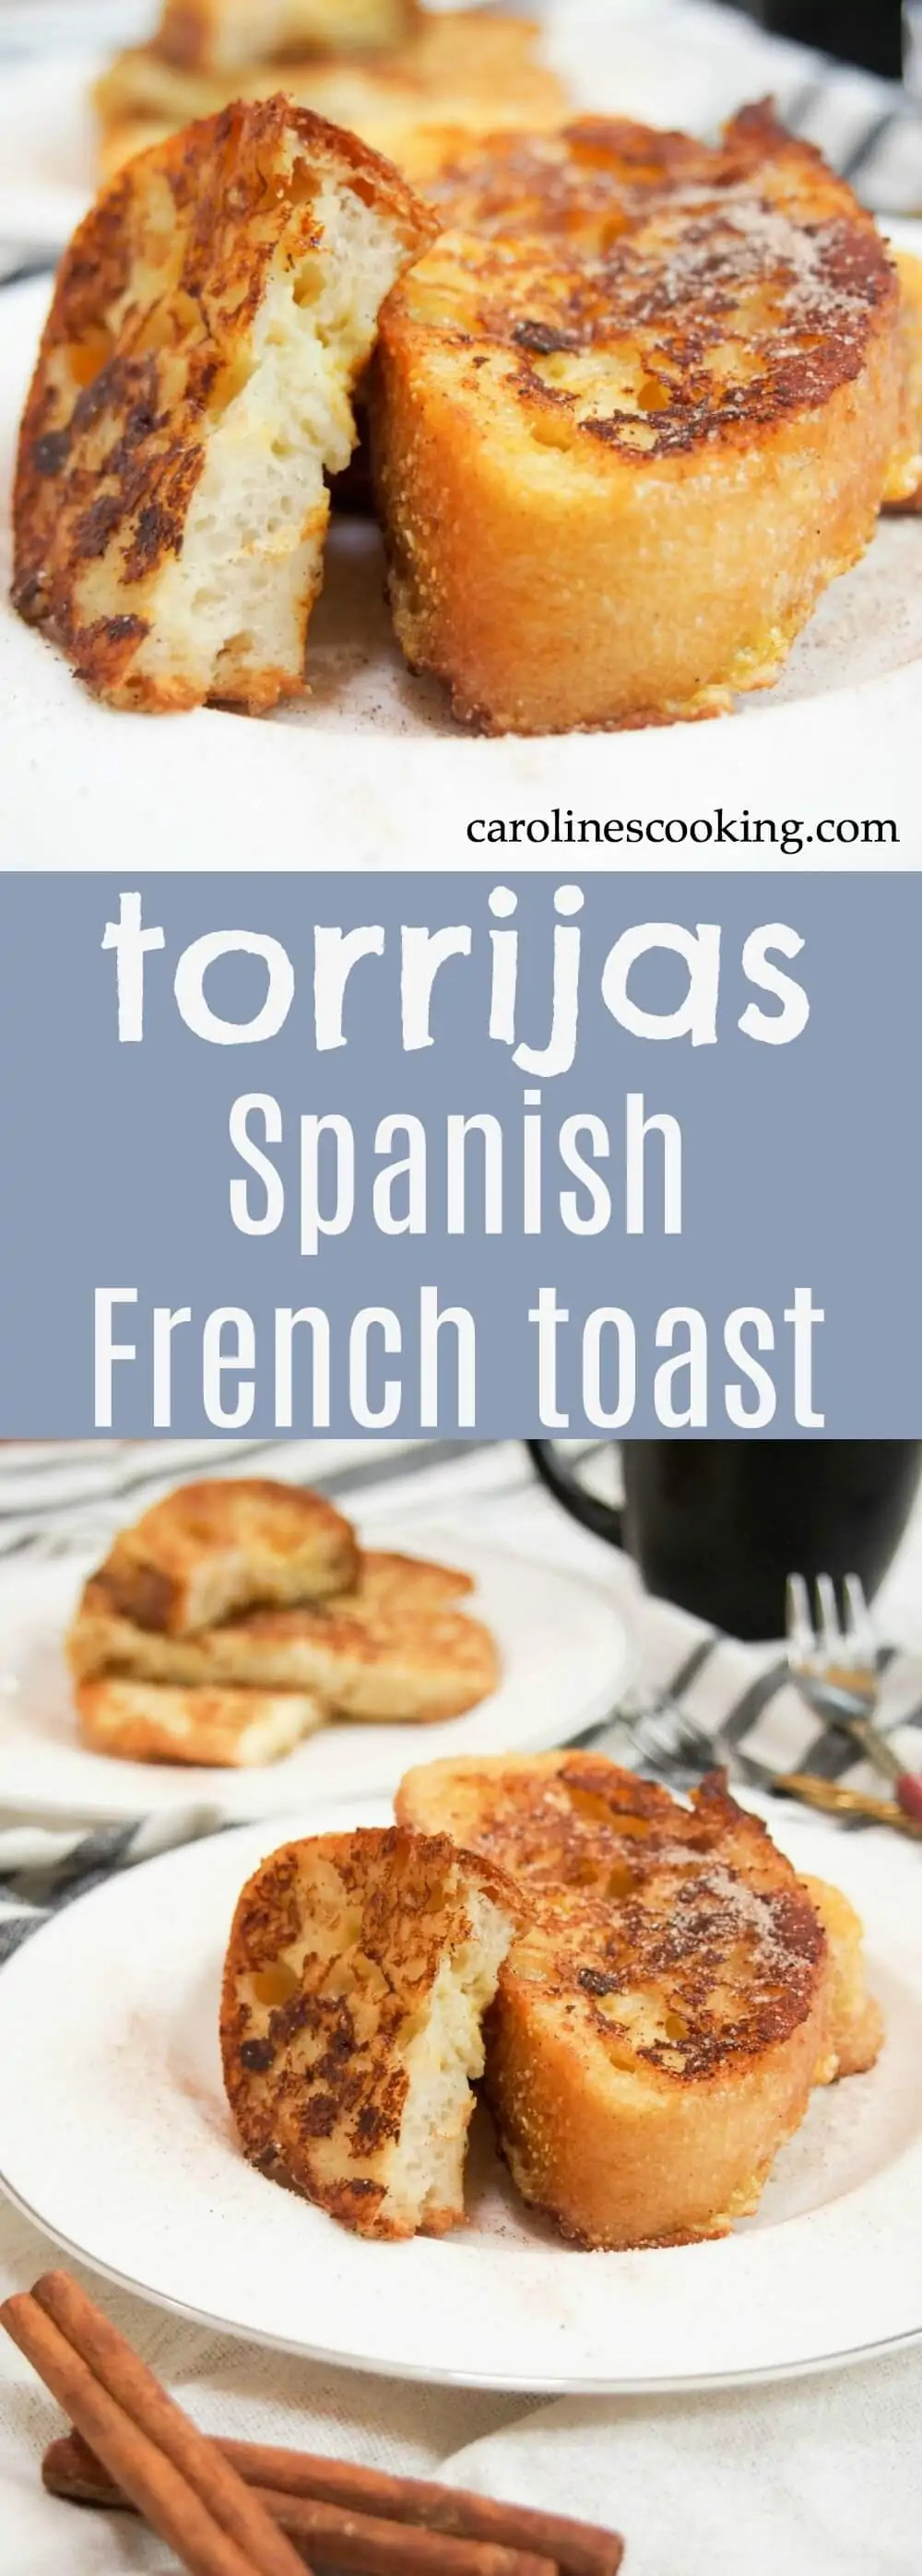 Spanish French toast, torrijas, is traditionally served during Easter, but there's really no reason why you shouldn't enjoy this tasty treat any time of year. Soft inside, crisp outside and gently and warmly flavored, it'll be love at first bite. You'll not want to go back to your typical French toast breakfast after this. #Frenchtoast #Spanish #breakfast